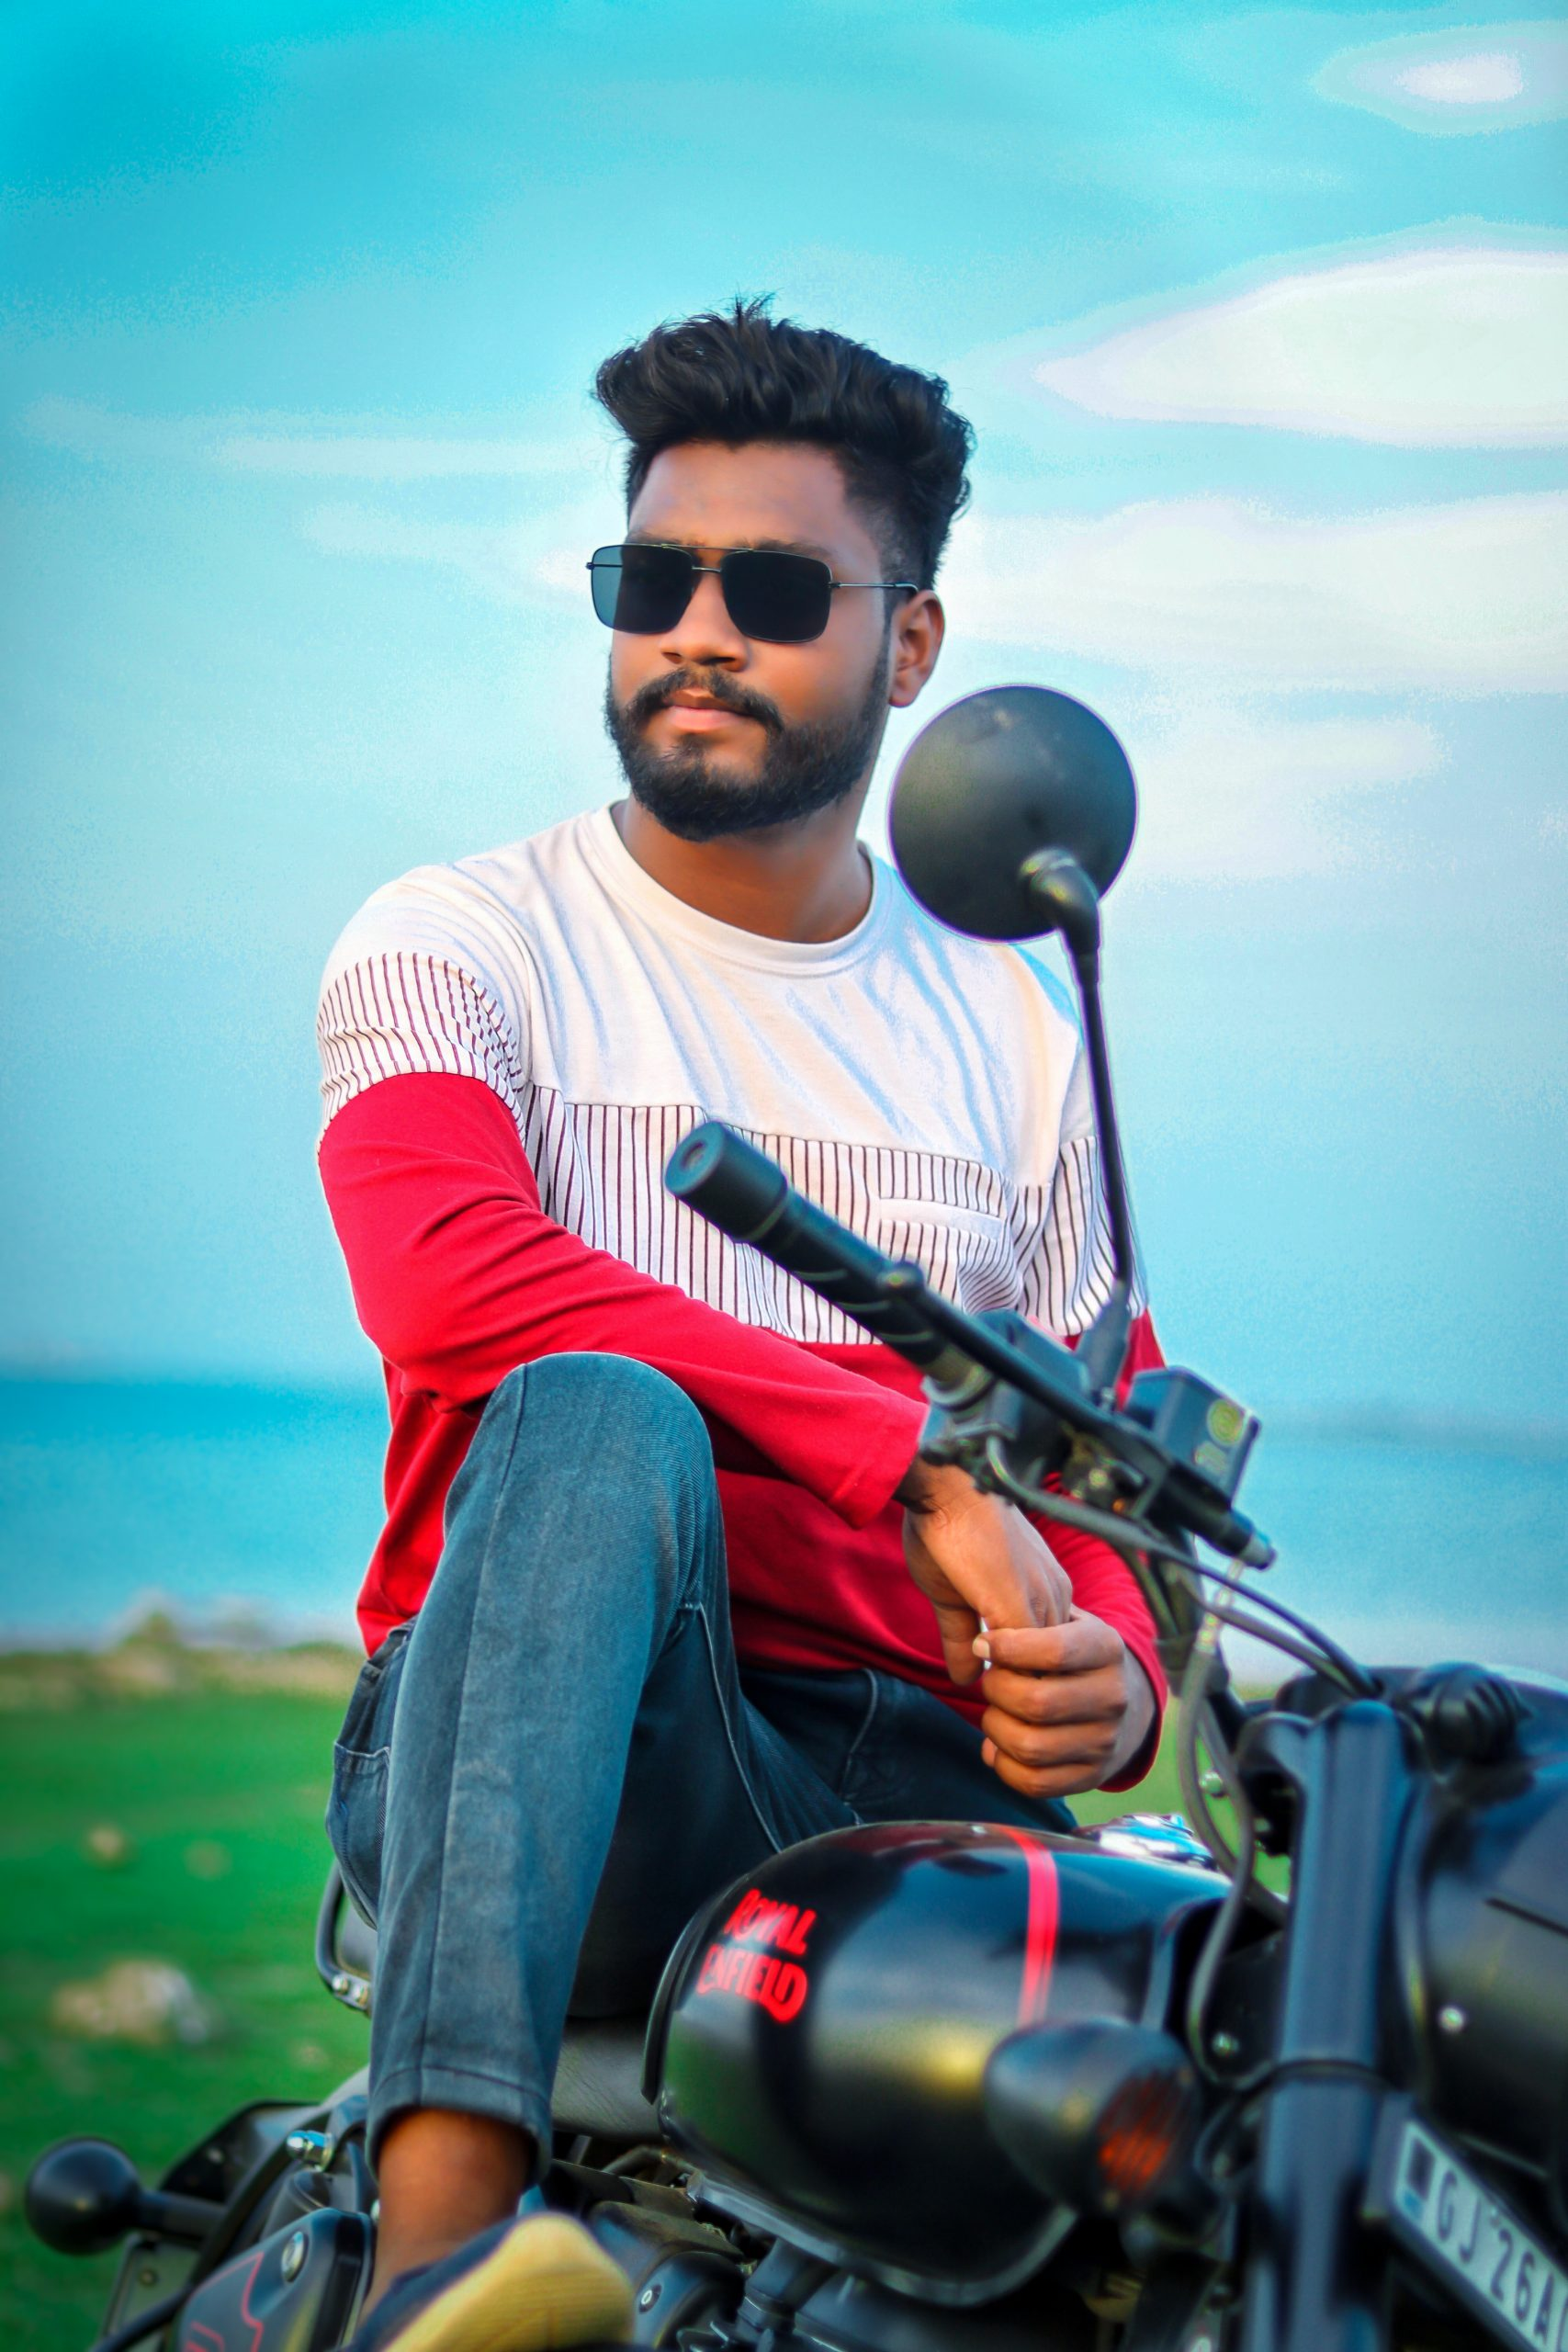 Boy posing on Royal Enfield bike